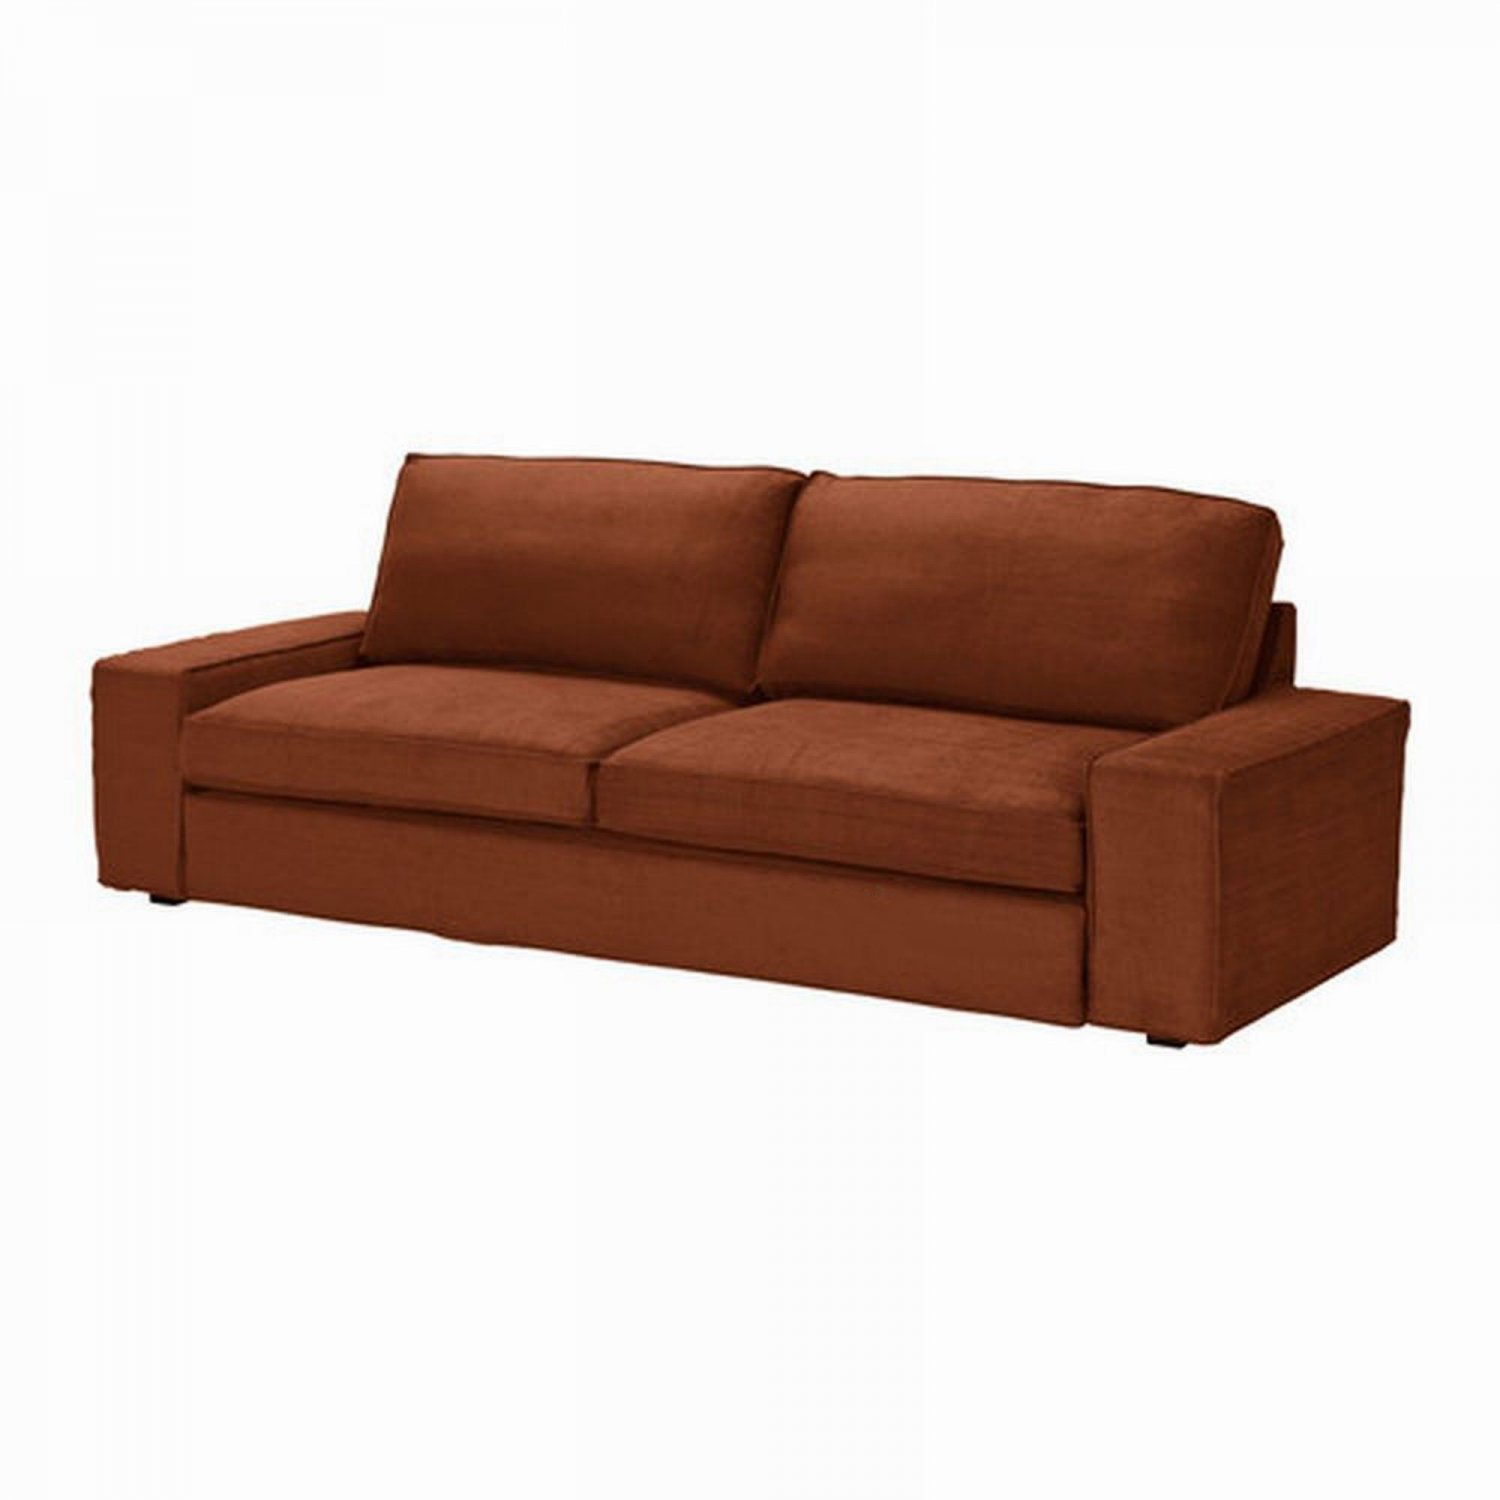 Kivik Sofa Ikea Test Ikea Kivik Sofa Bed Slipcover Cover Tullinge Rust Brown